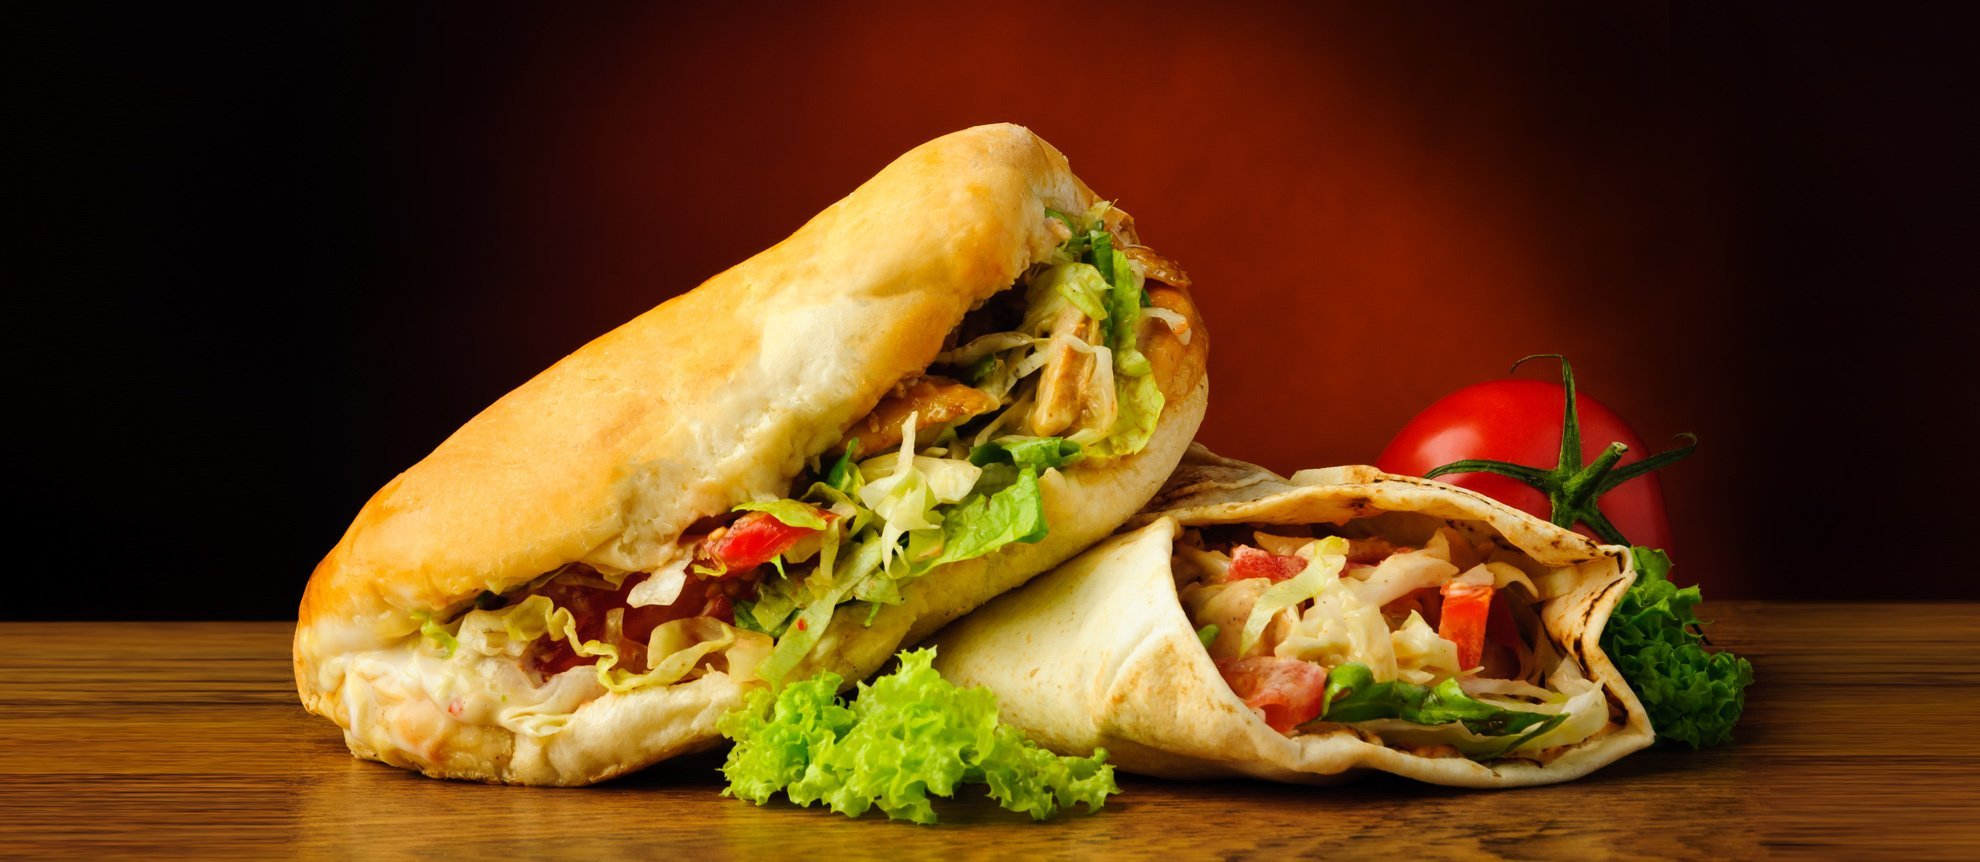 Mouth-watering wraps